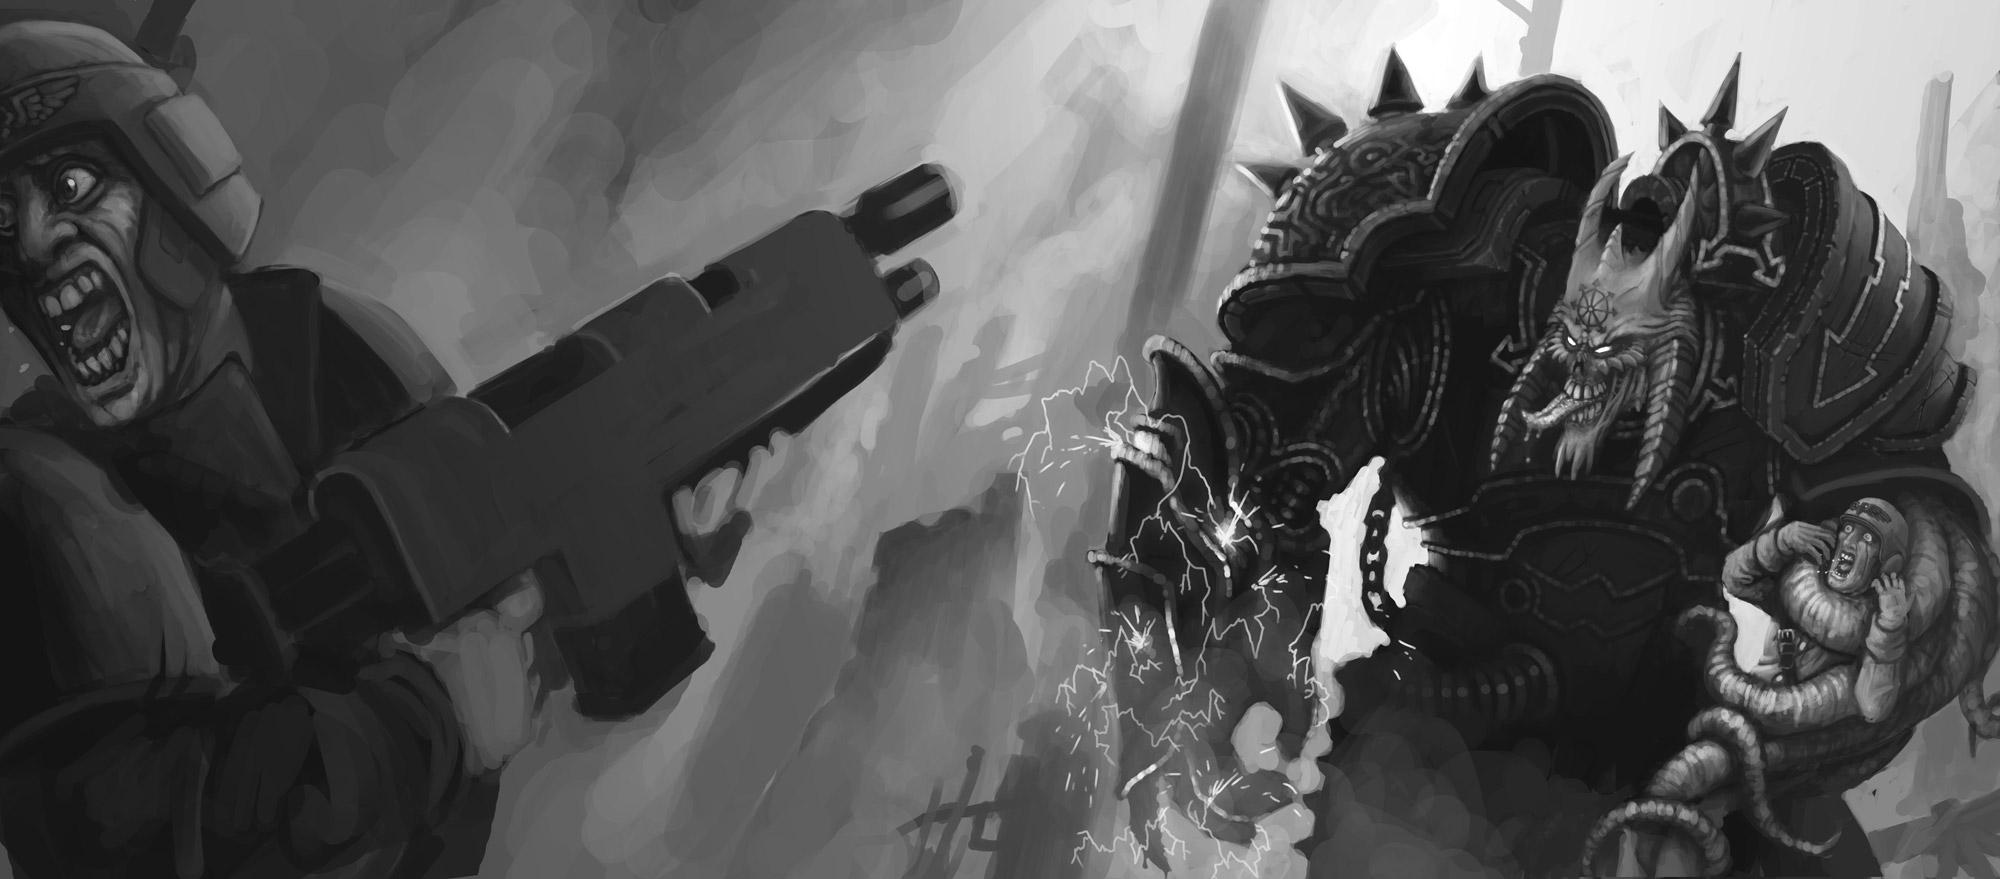 [W40K] Collection d'images : Space Marines du Chaos - Page 2 WH40K___Chaos_Marine___WIP_by_xadhoom